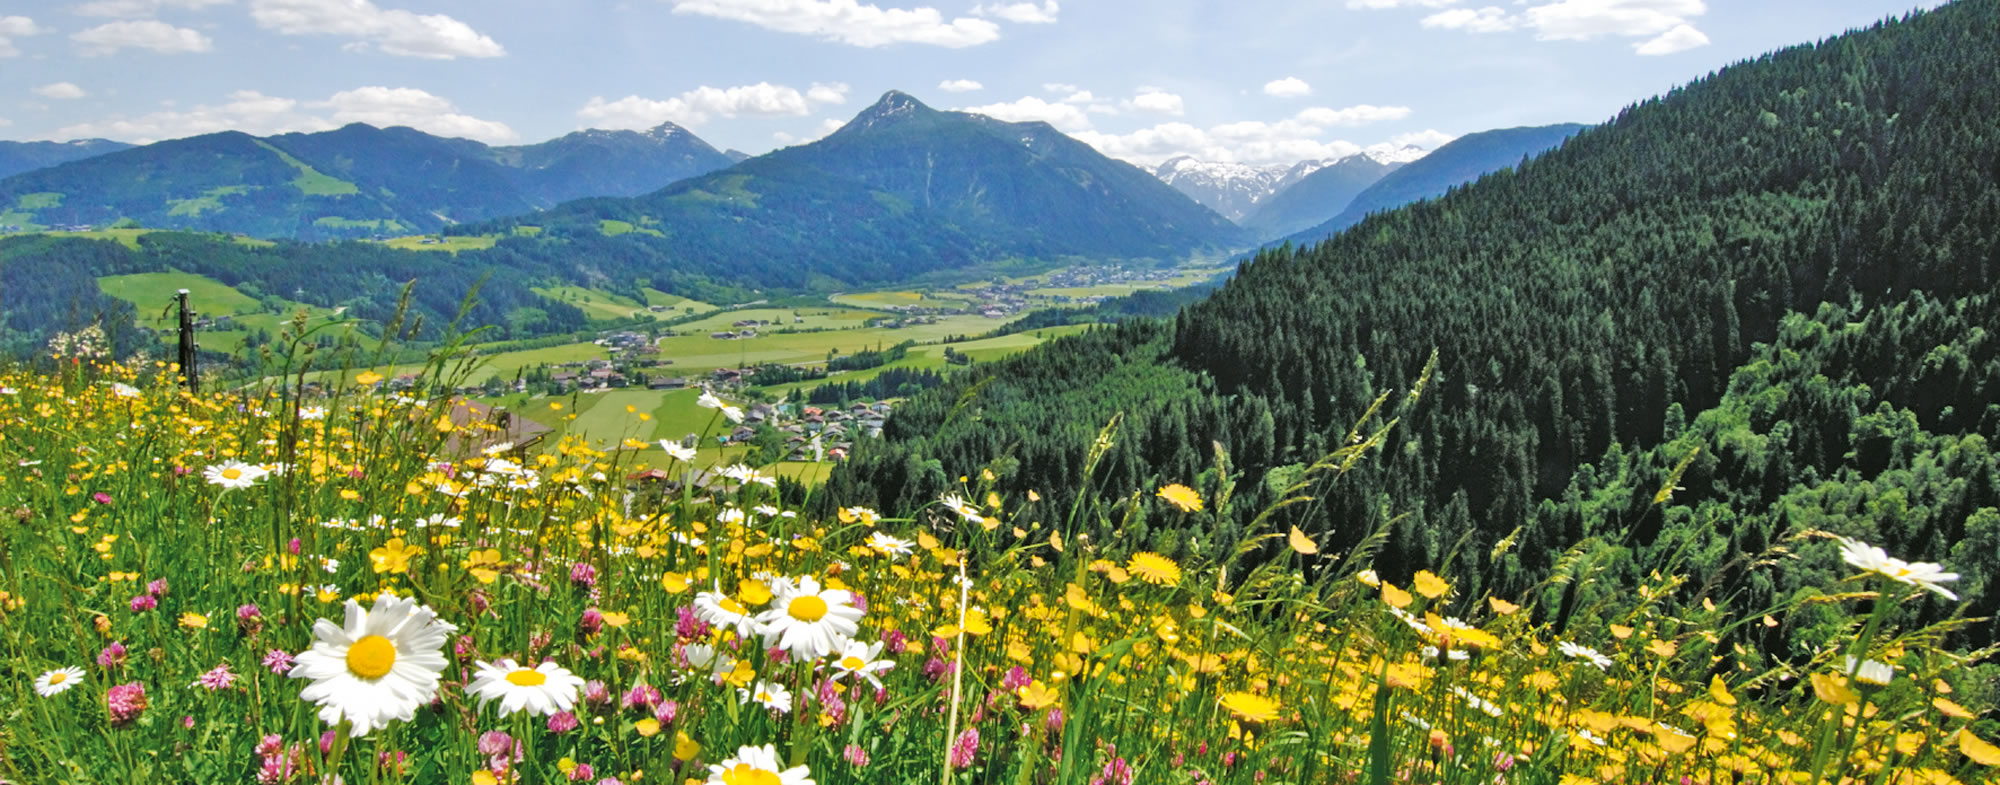 Summer holiday in Flachau, in the middle of the Alps in Austria, Salzburger Land